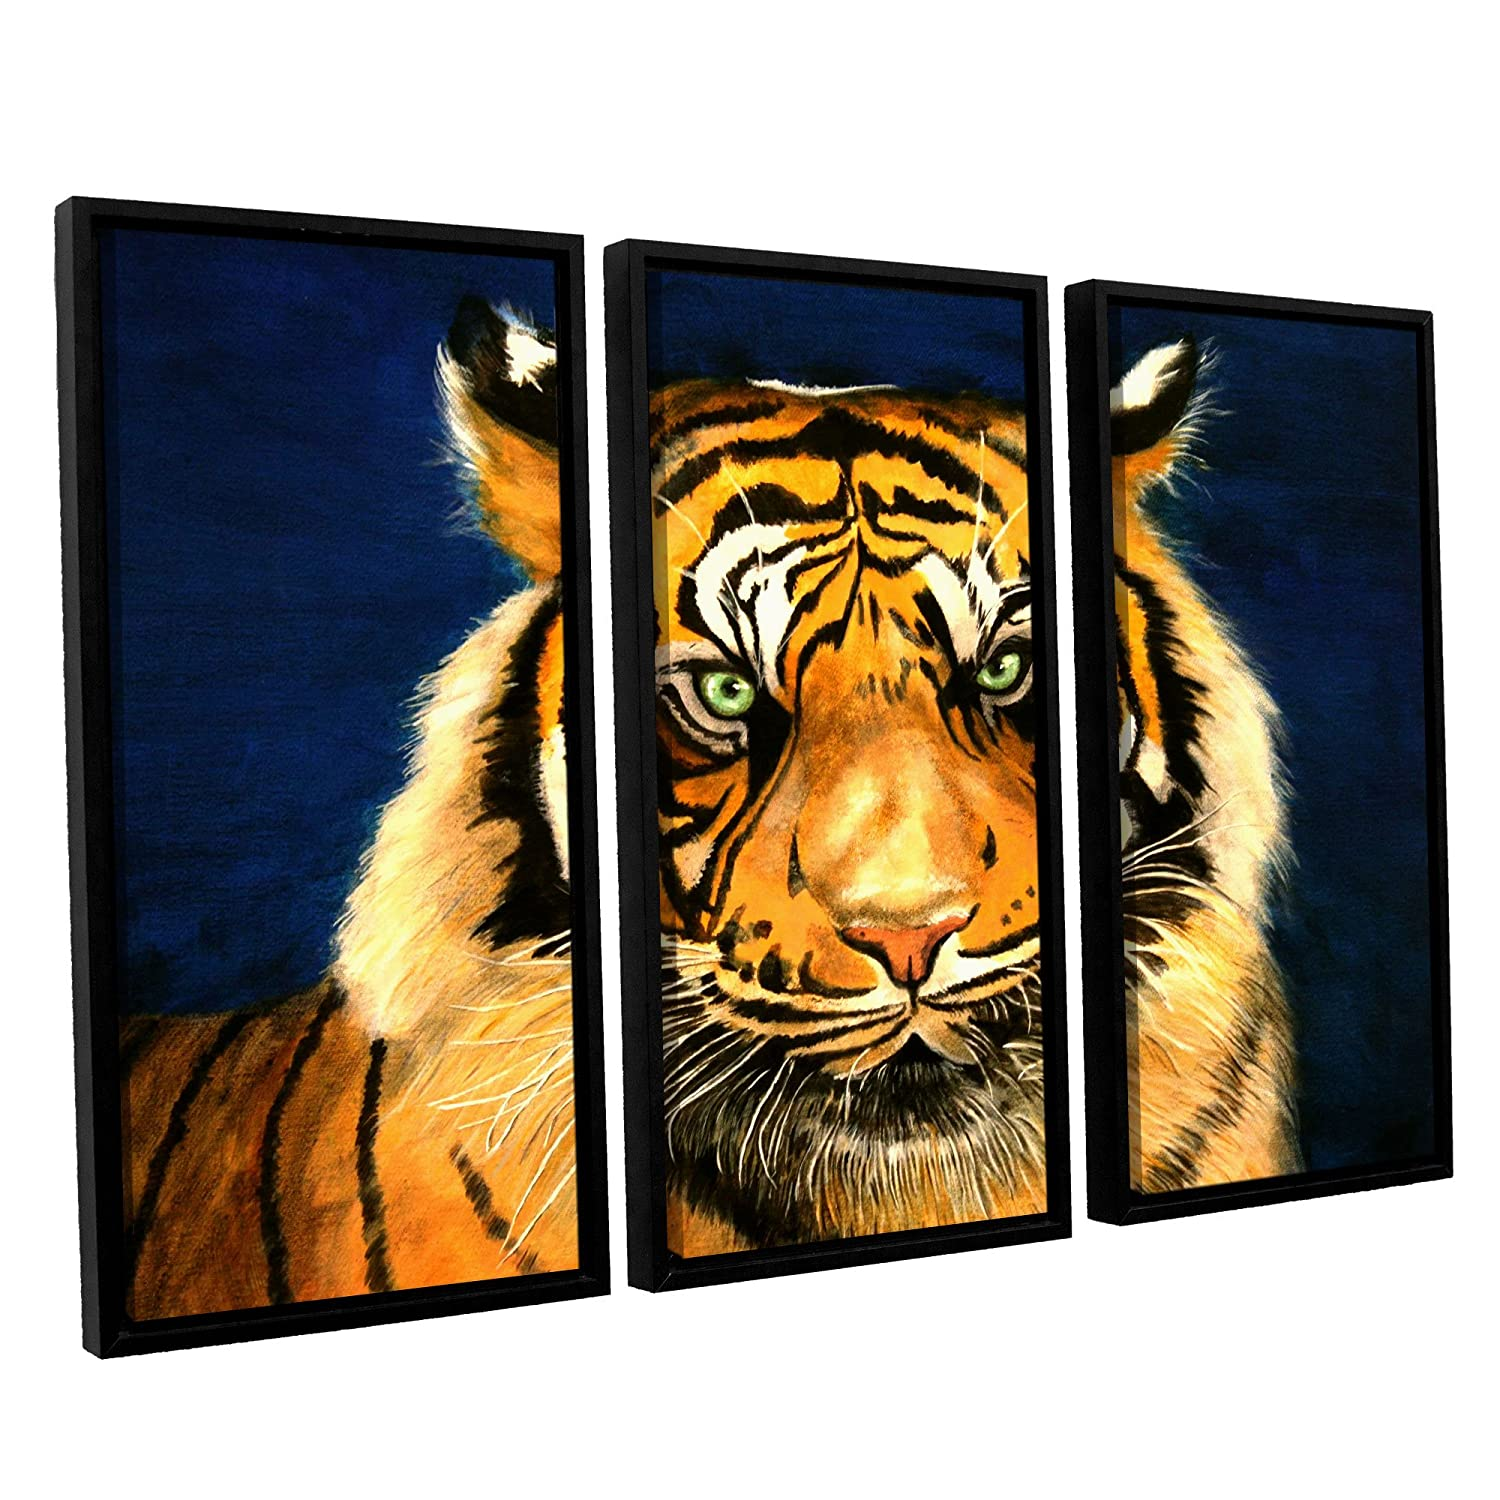 36 by 54 ArtWall Lindsey Janich Tiger By Lins 3 Piece Floater Framed Canvas Artwork